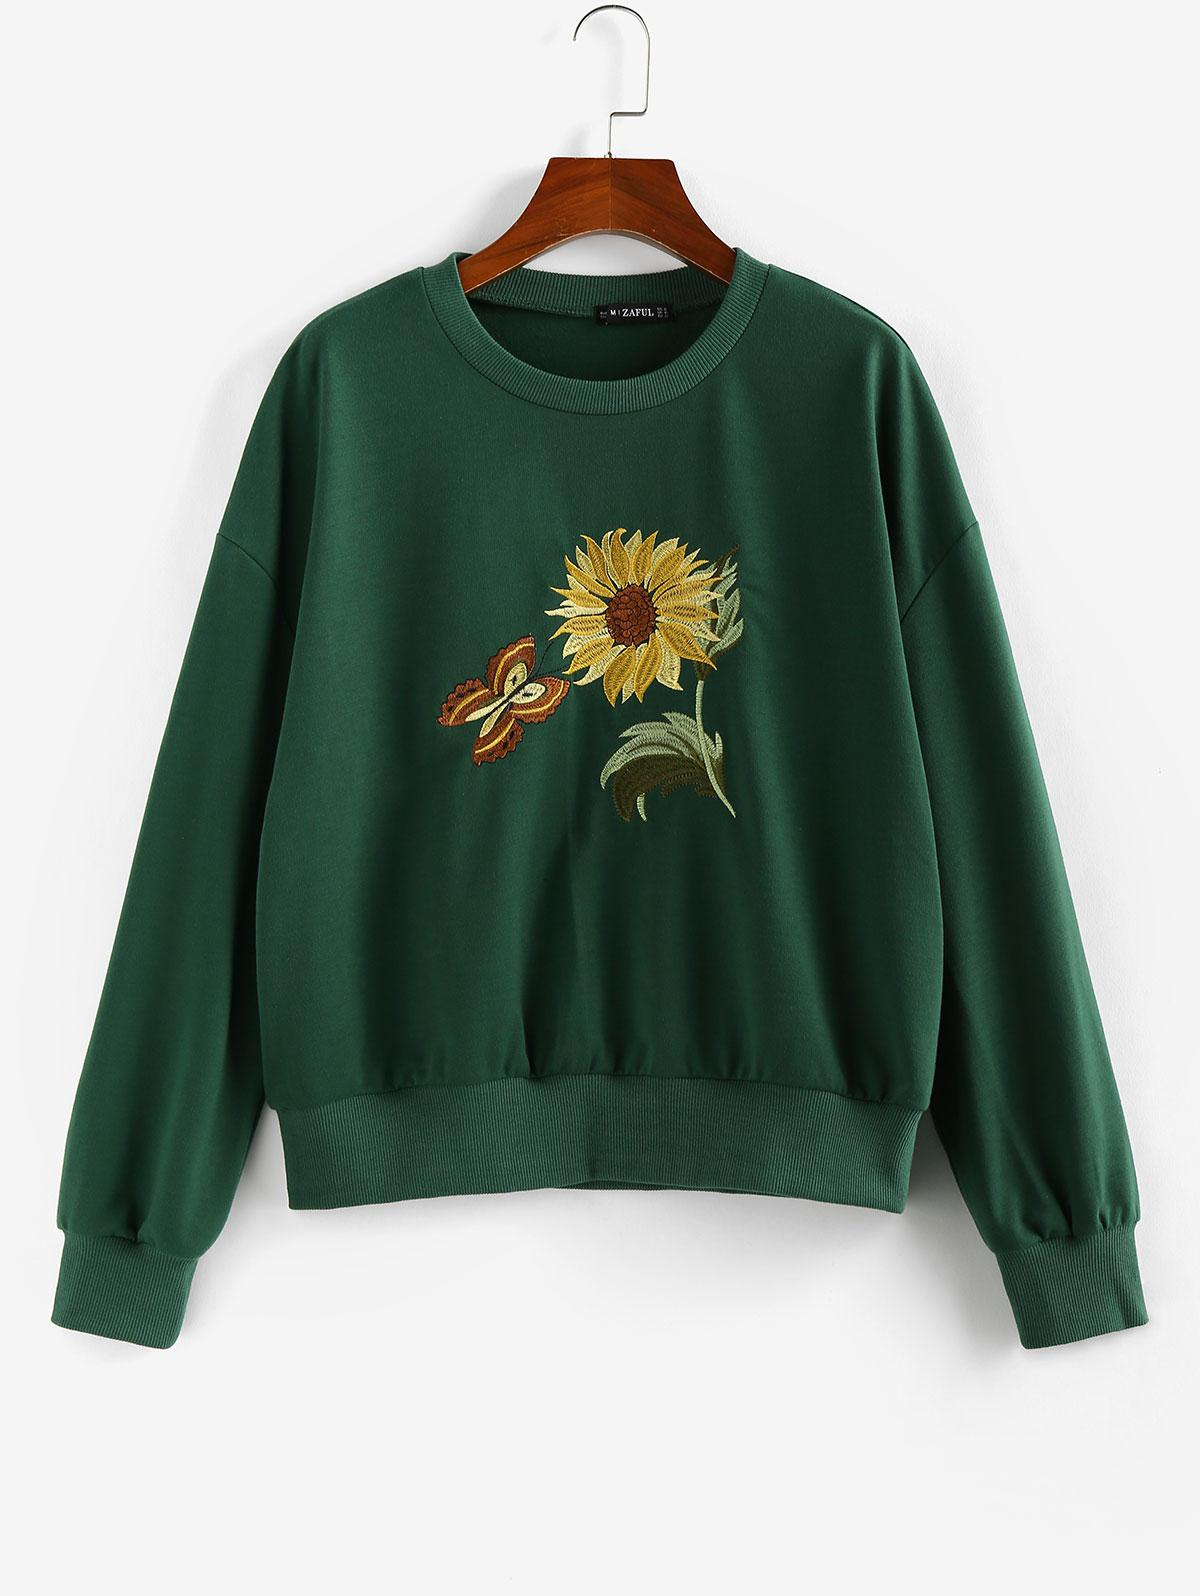 ZAFUL Flower Butterfly Embroidered Drop Shoulder Sweatshirt